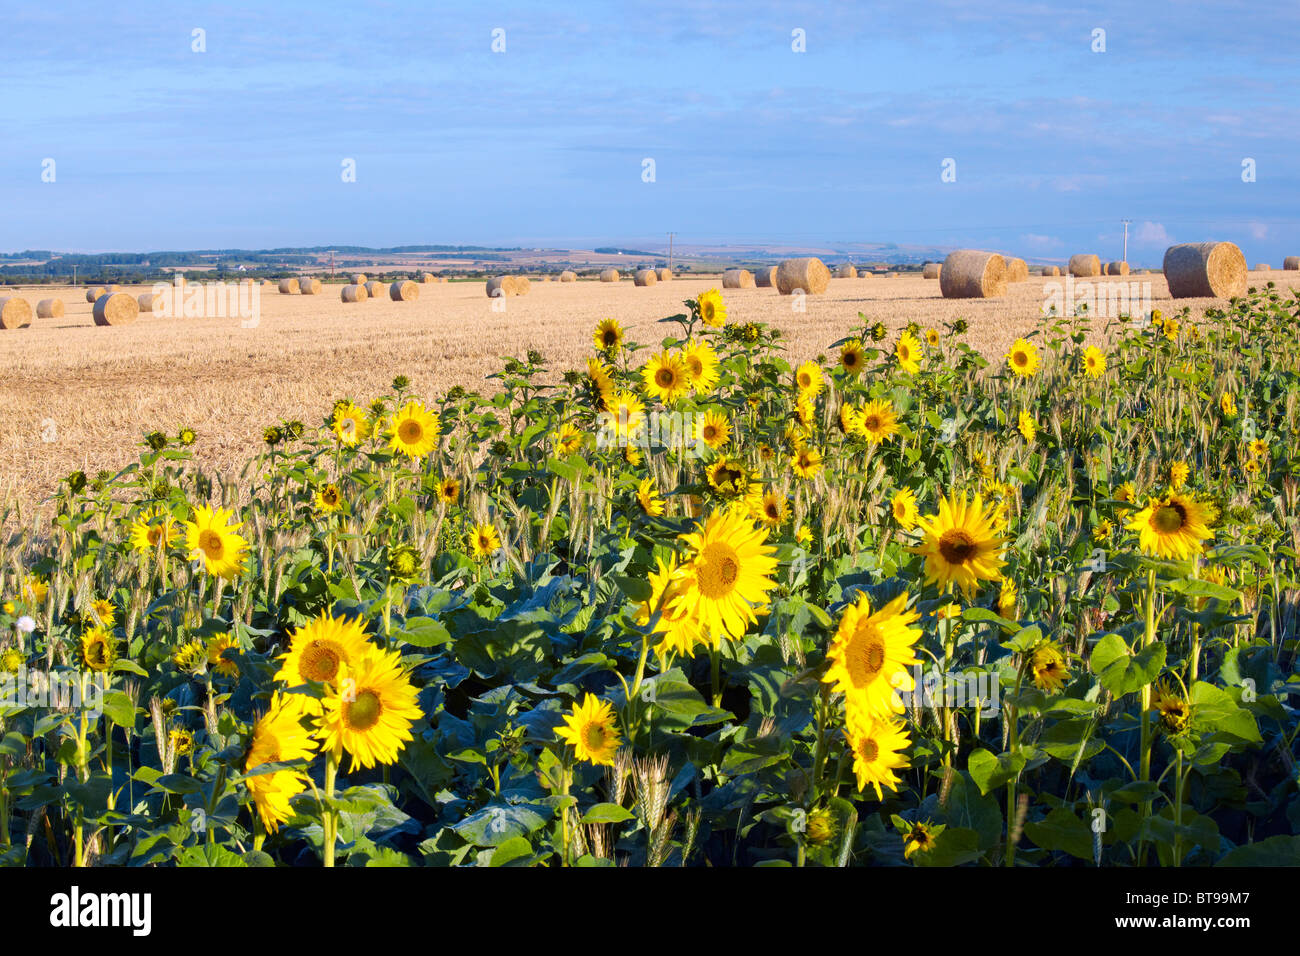 Sunflowers used as conservation headland on a farm in Northumberland - Stock Image